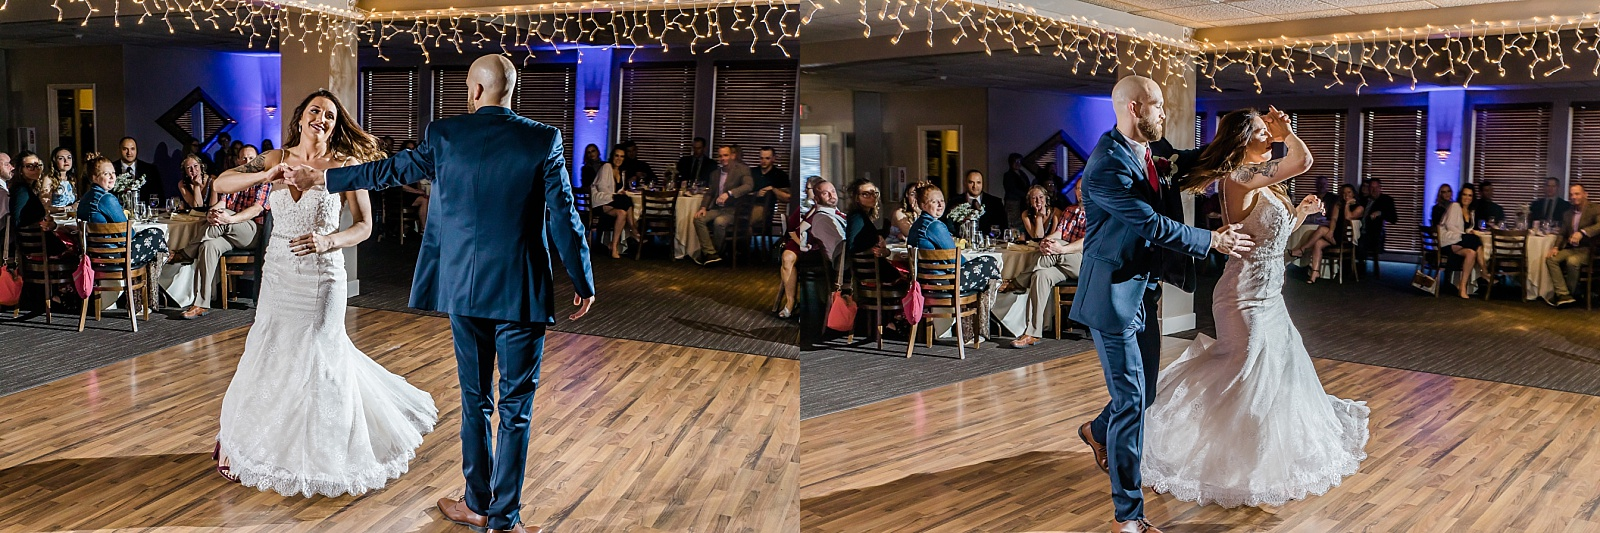 south bend wedding photographer the woodward room_0069.jpg